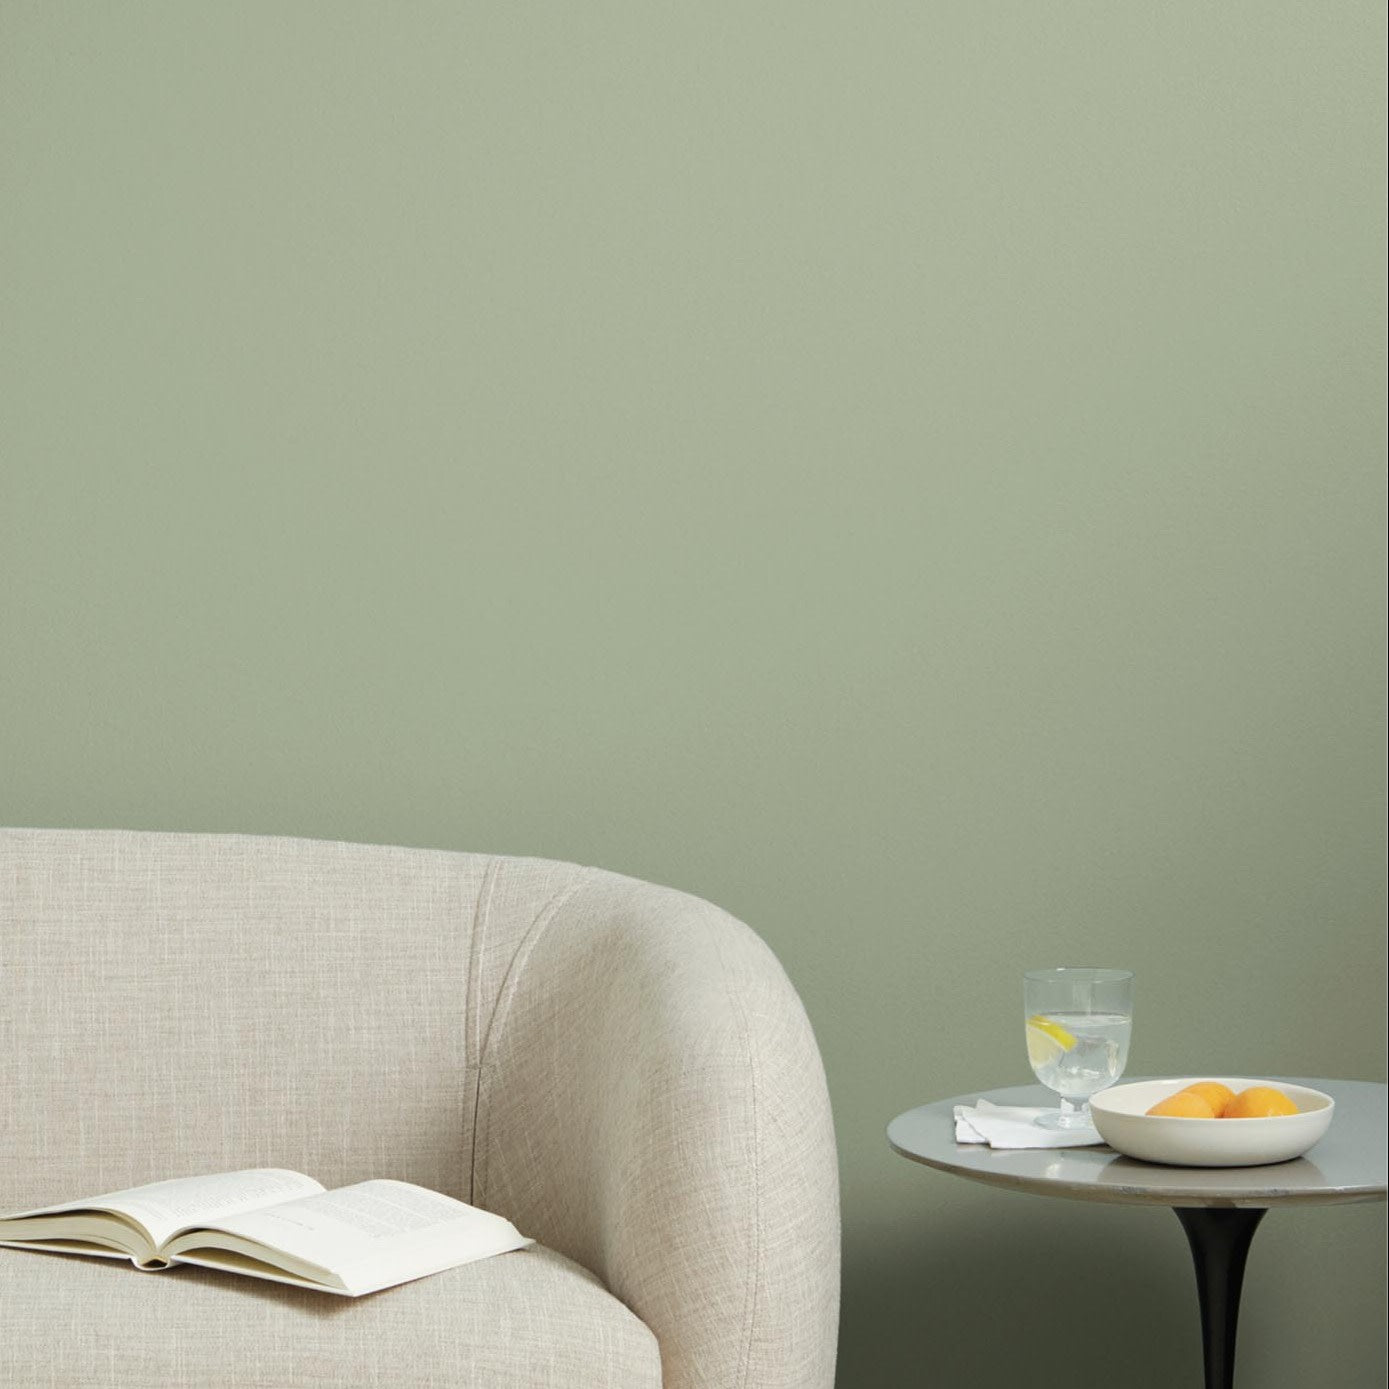 sofa and table Clare paint green money moves